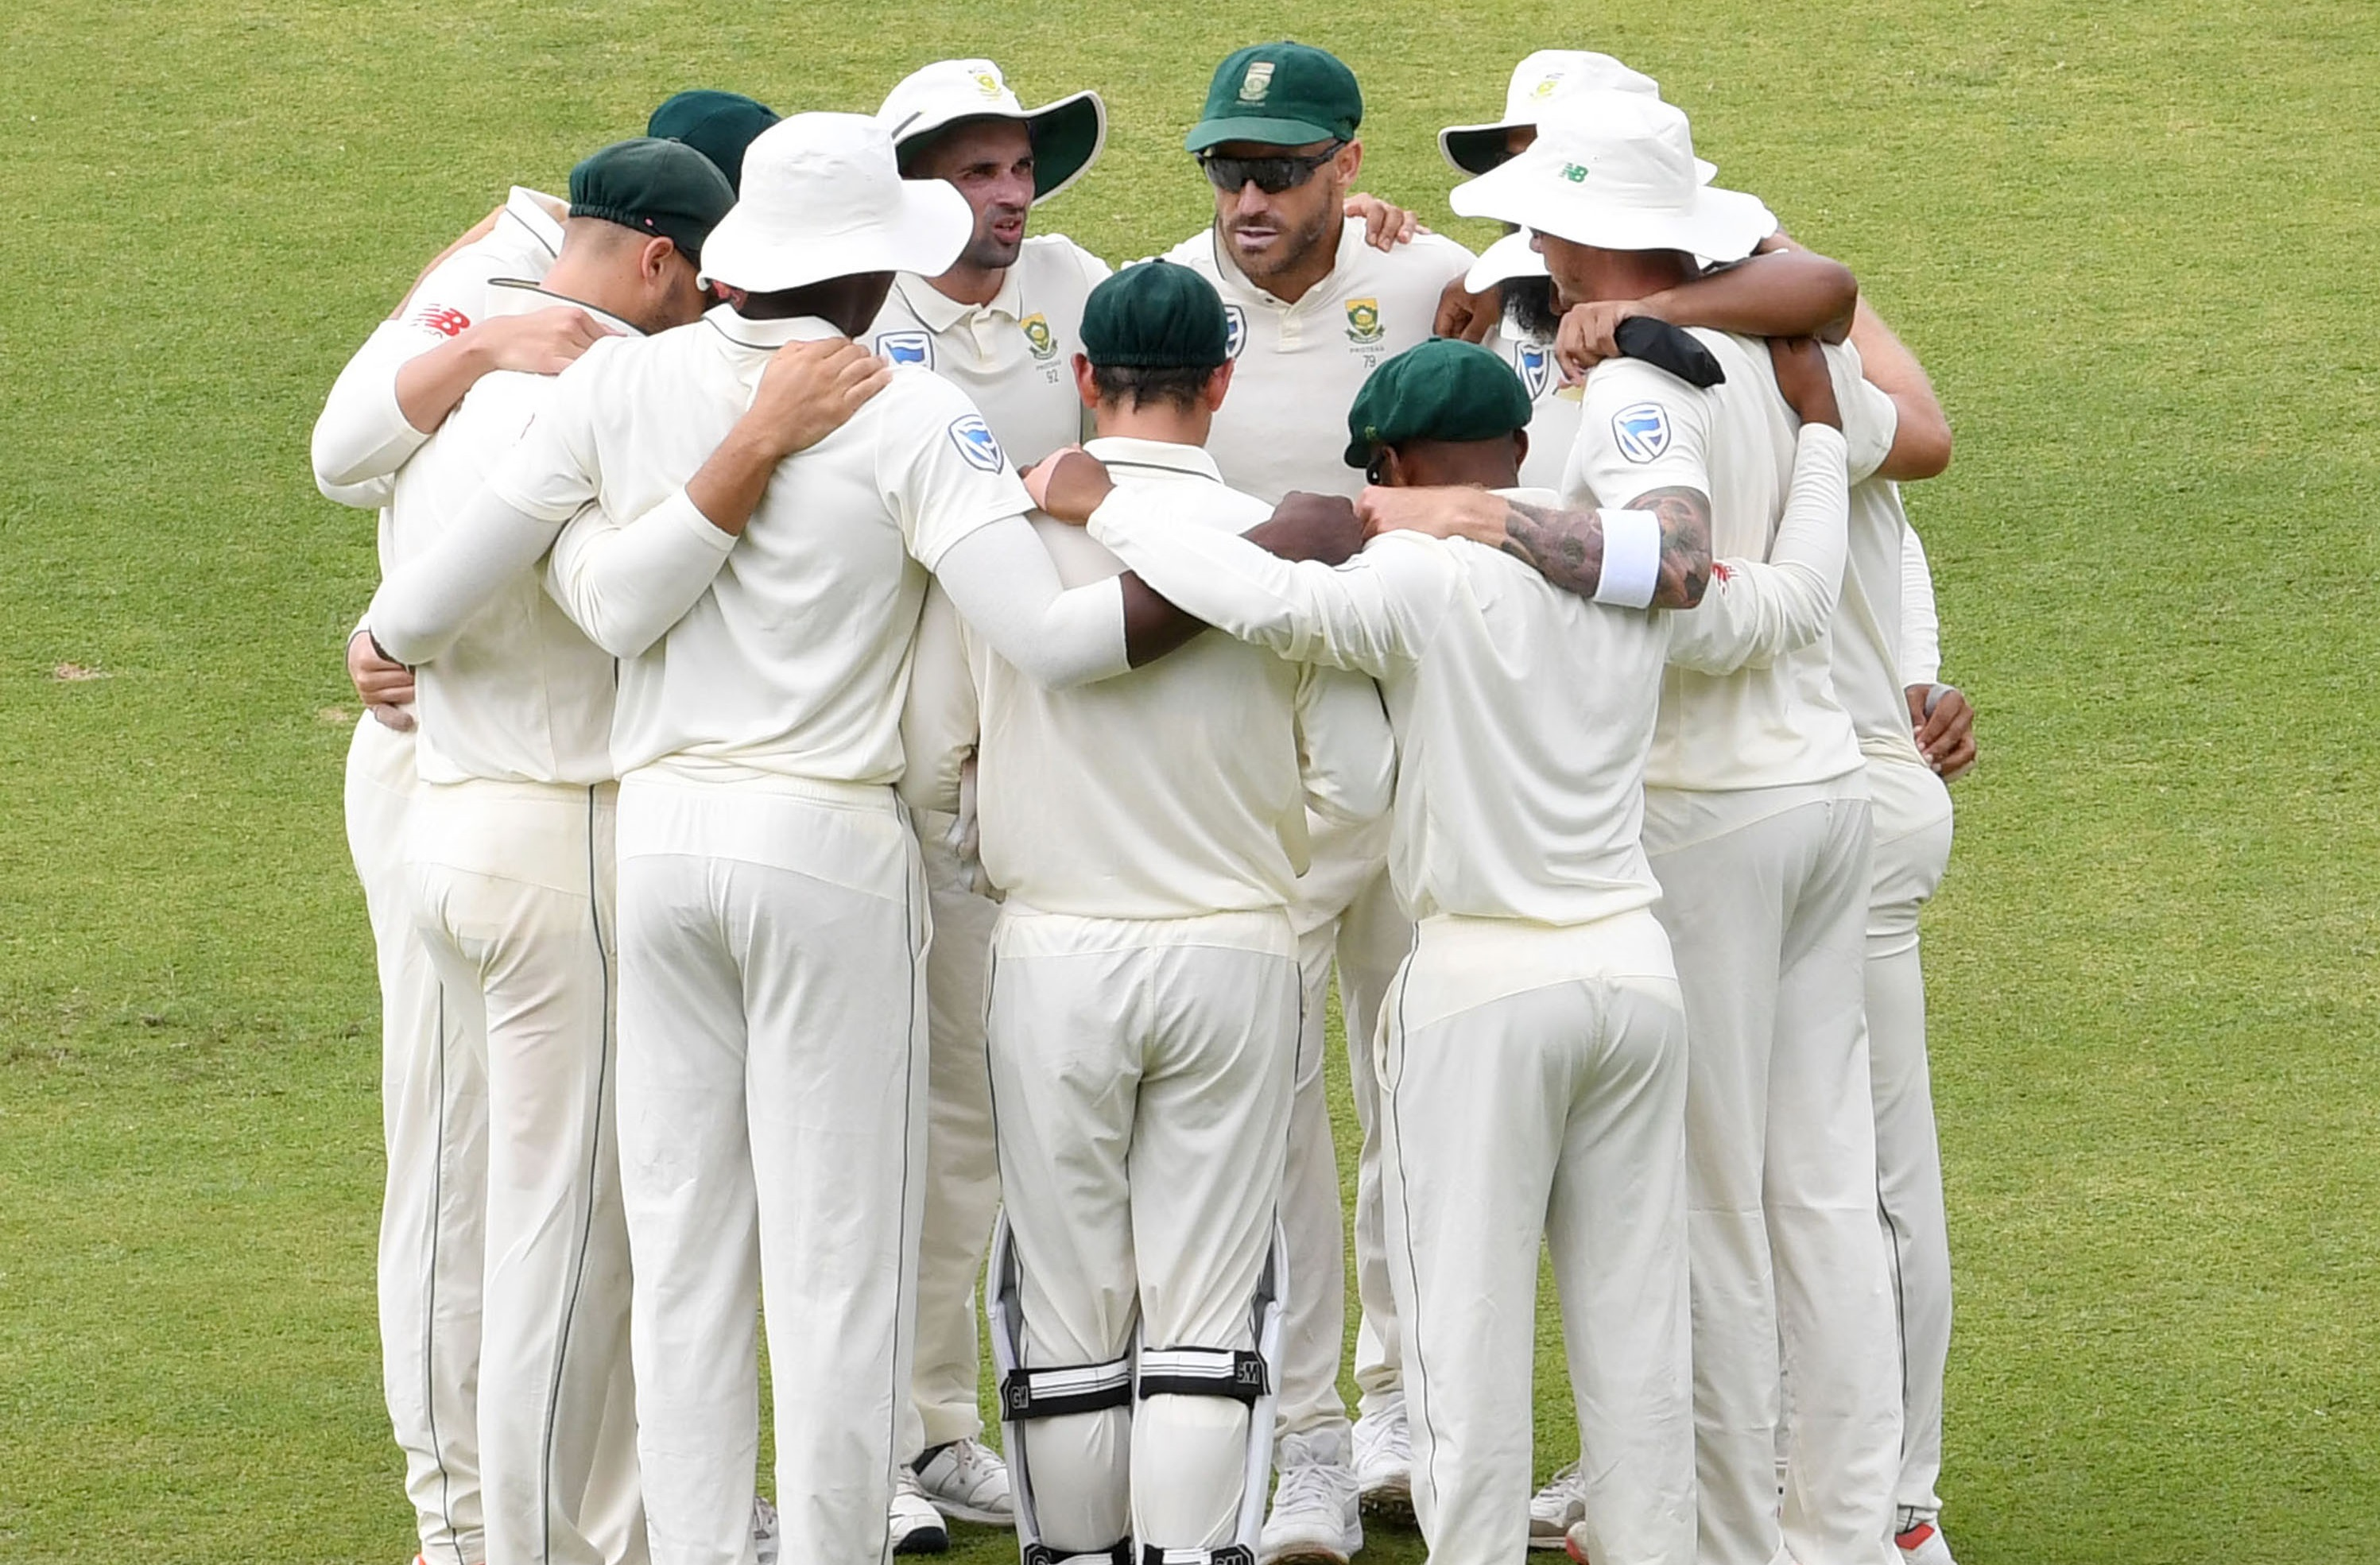 CSA chief calls for more patience amidst transitional phase